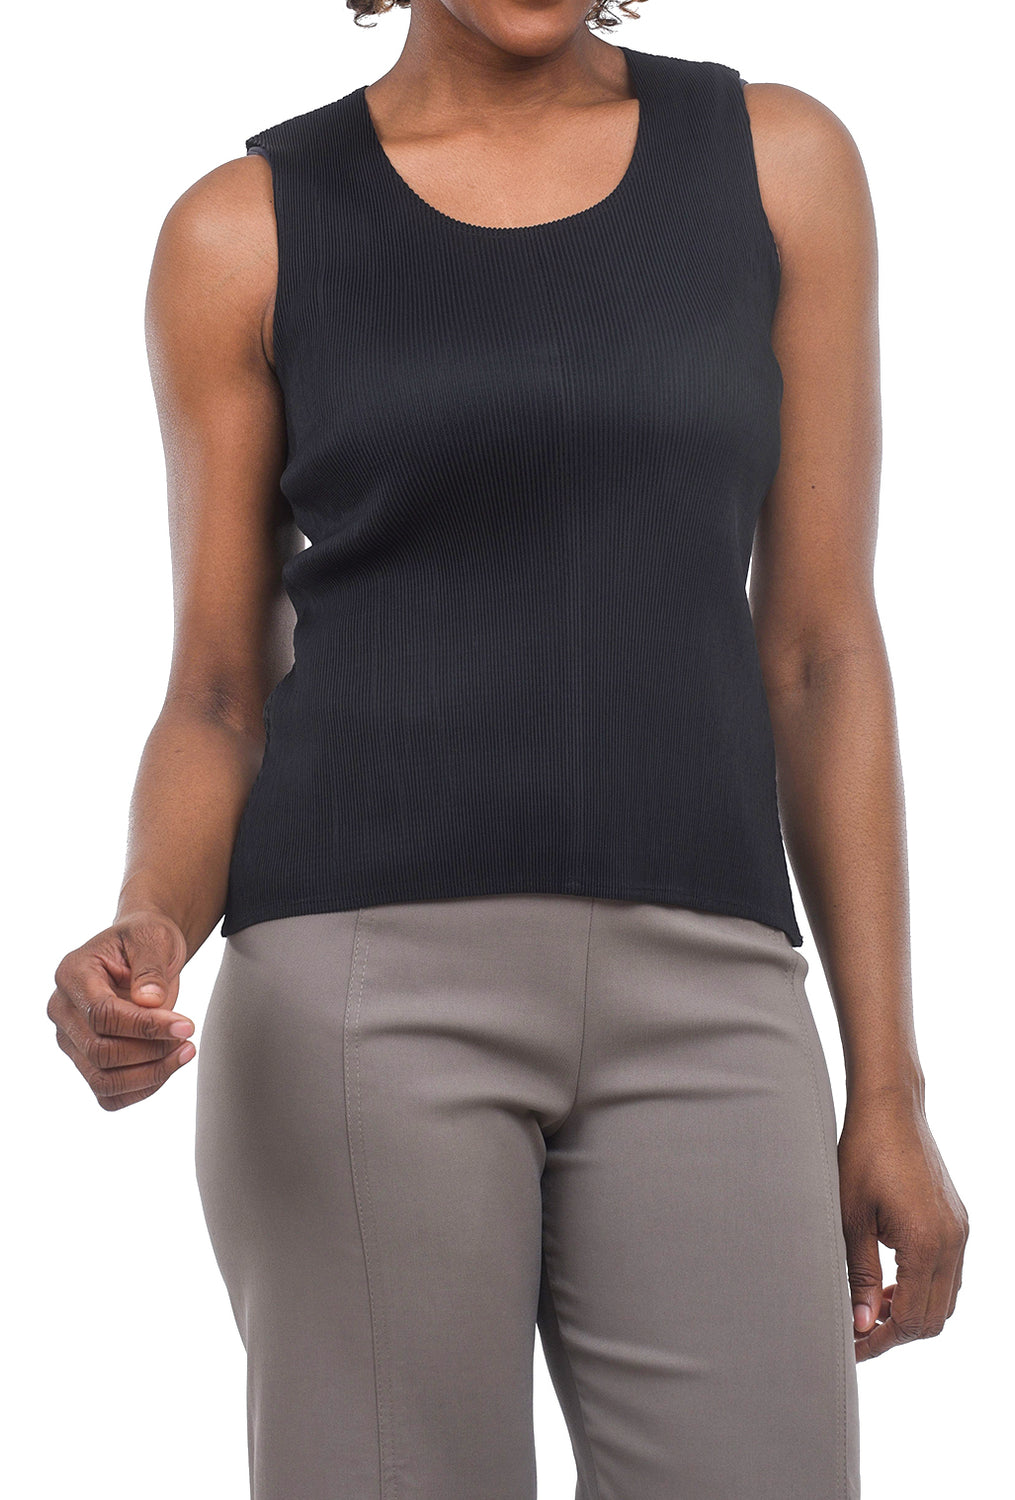 Alquema Micropleat Lula Tank, Black